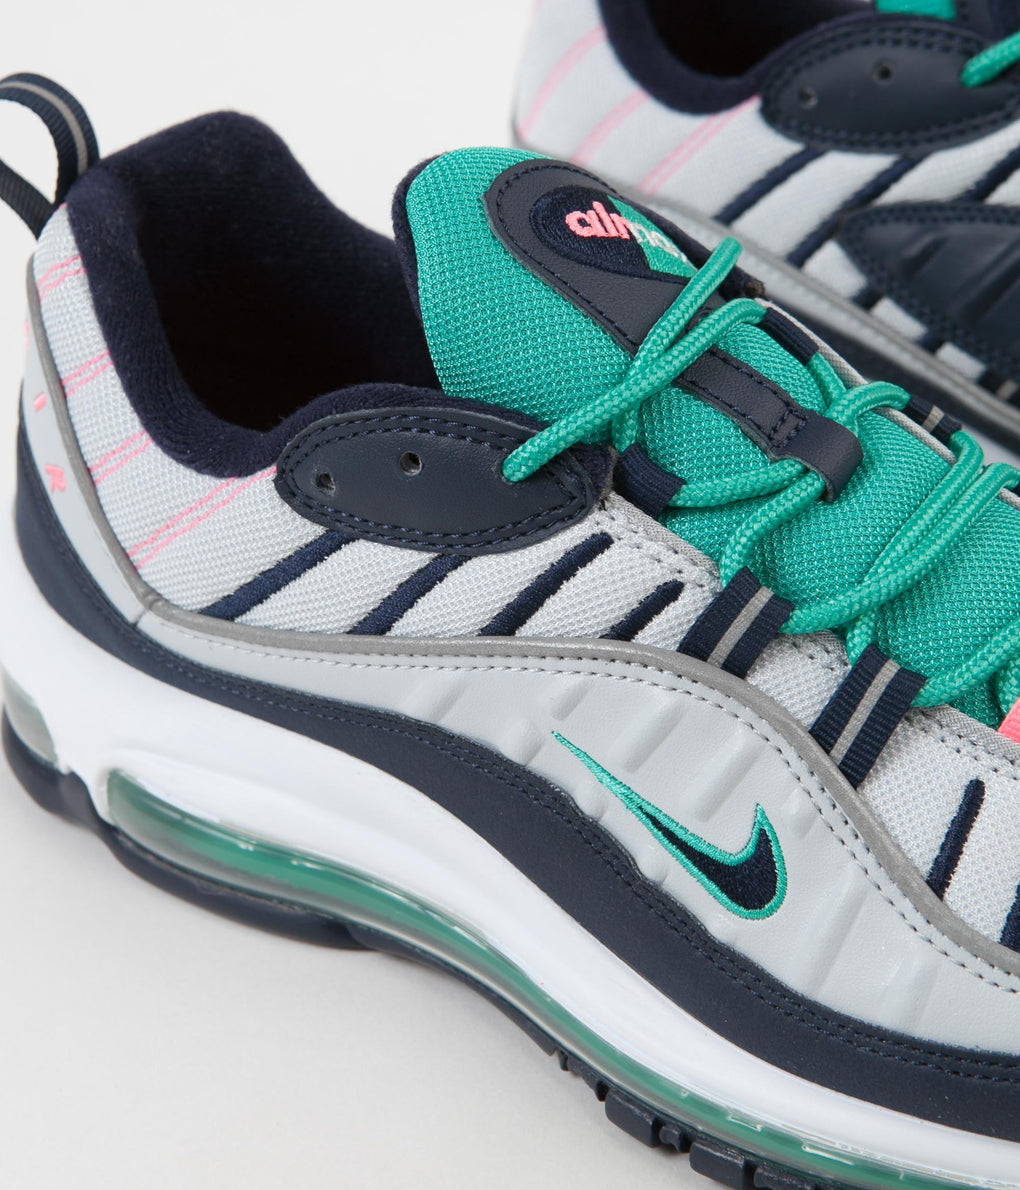 Nike Air Max 98 Shoes - Pure Platinum / Obsidian - Kinetic Green